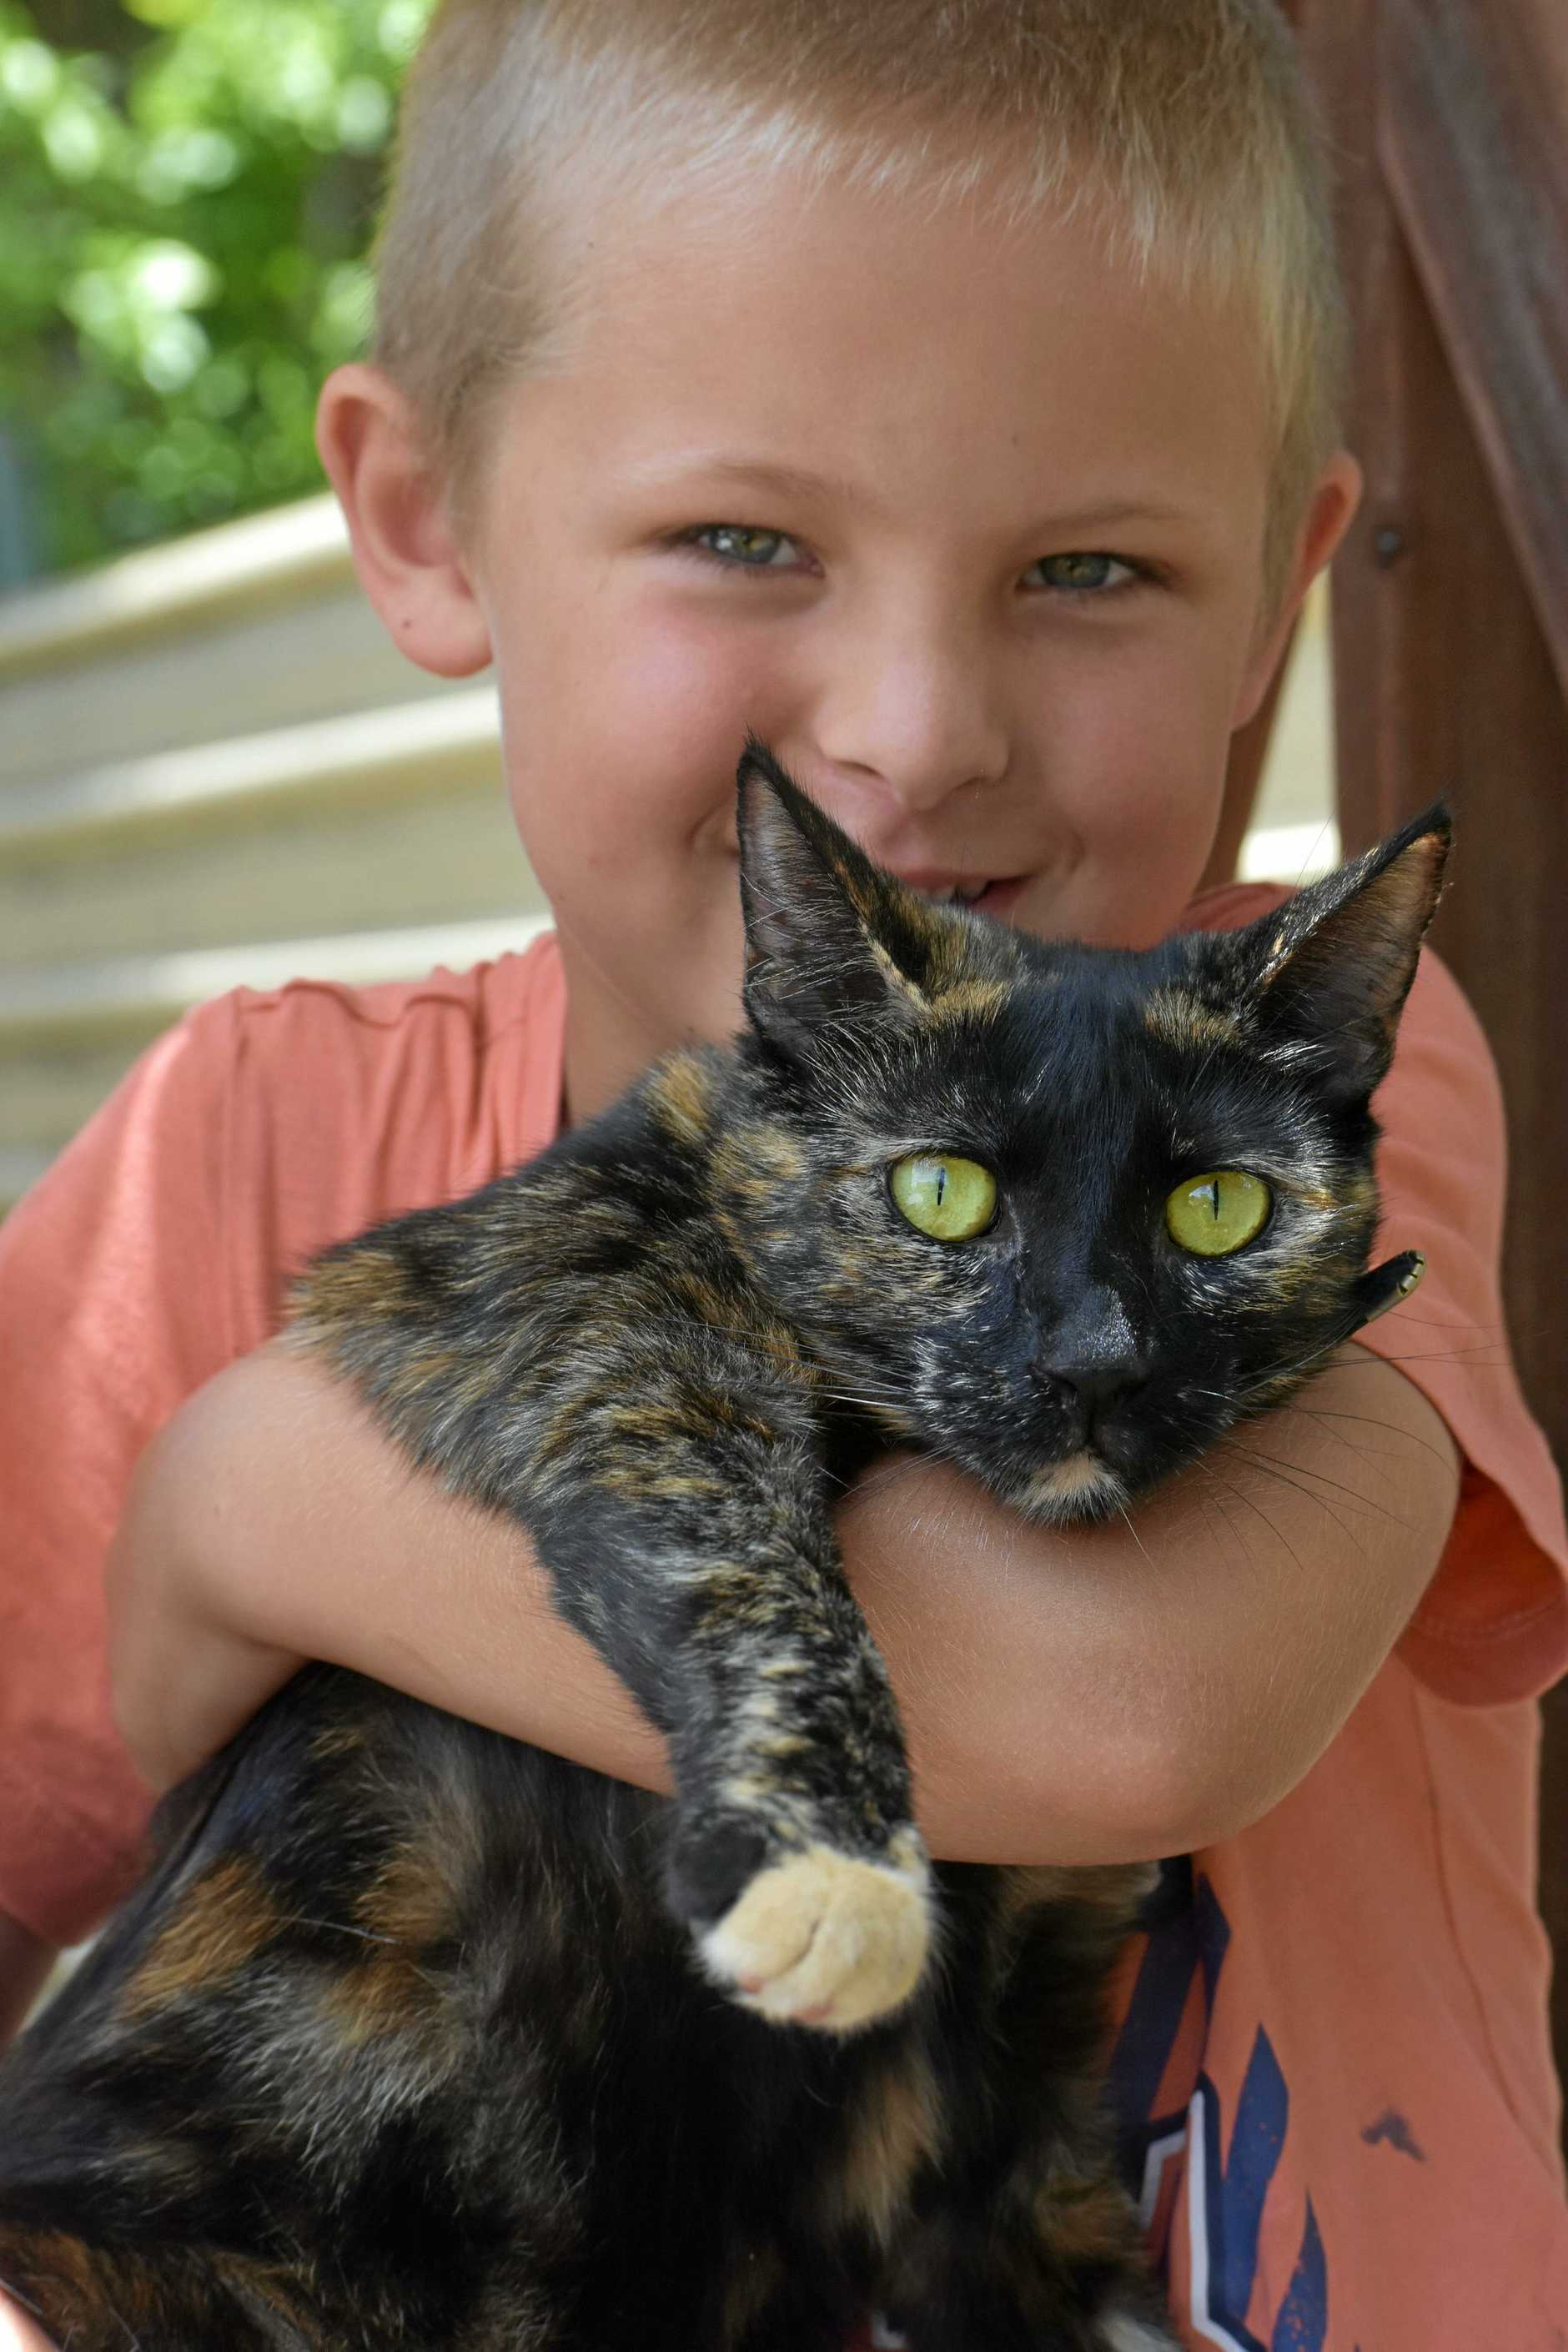 Six-year-old Will Catlin with the two-year-old cat